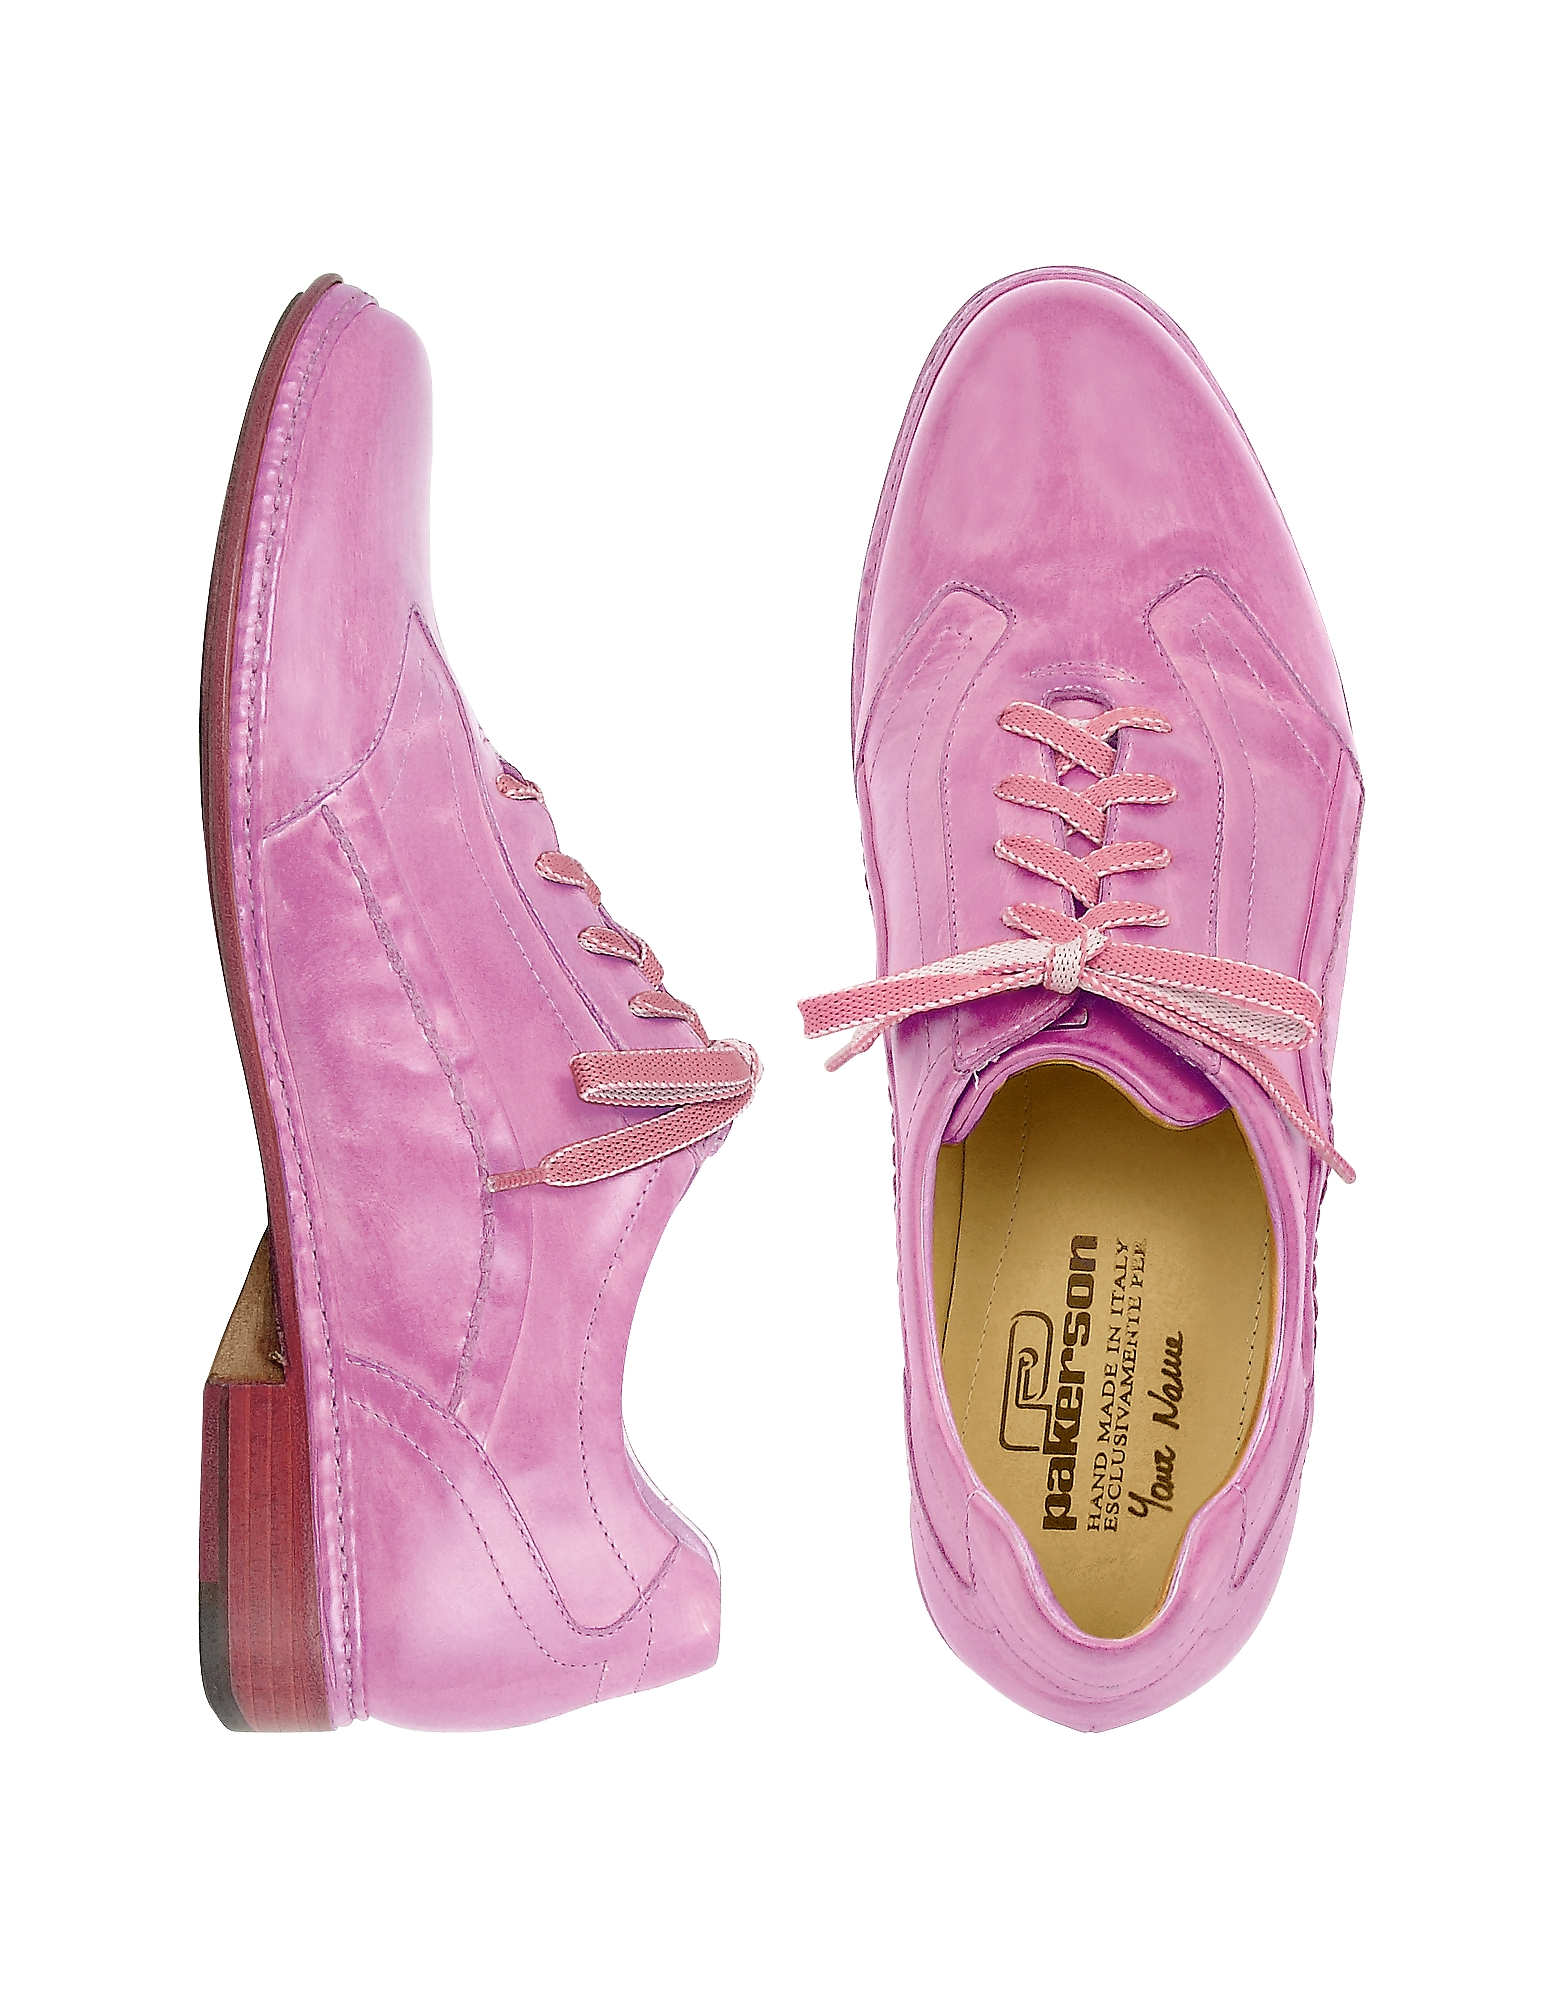 Pakerson Shoes, Pink Italian Handmade Leather Lace-up Shoes